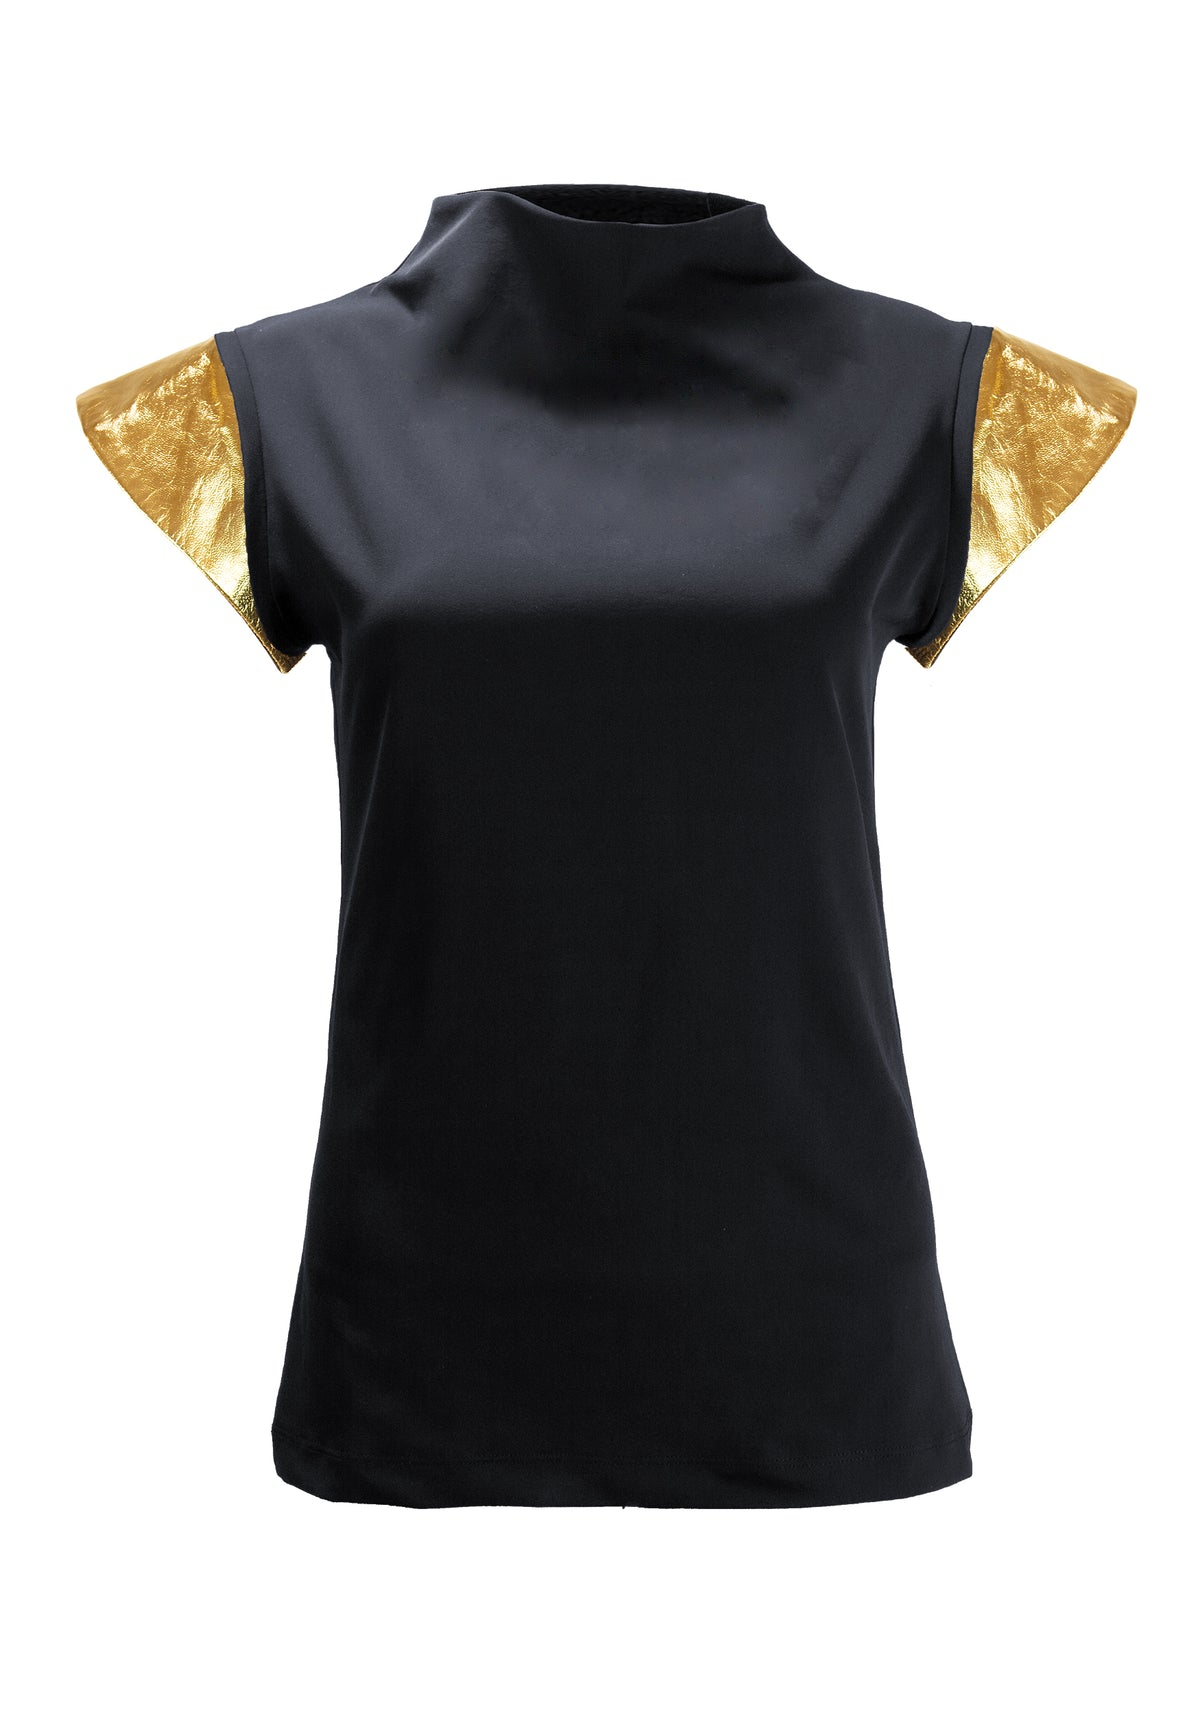 Metallic Leather Cap Sleeves